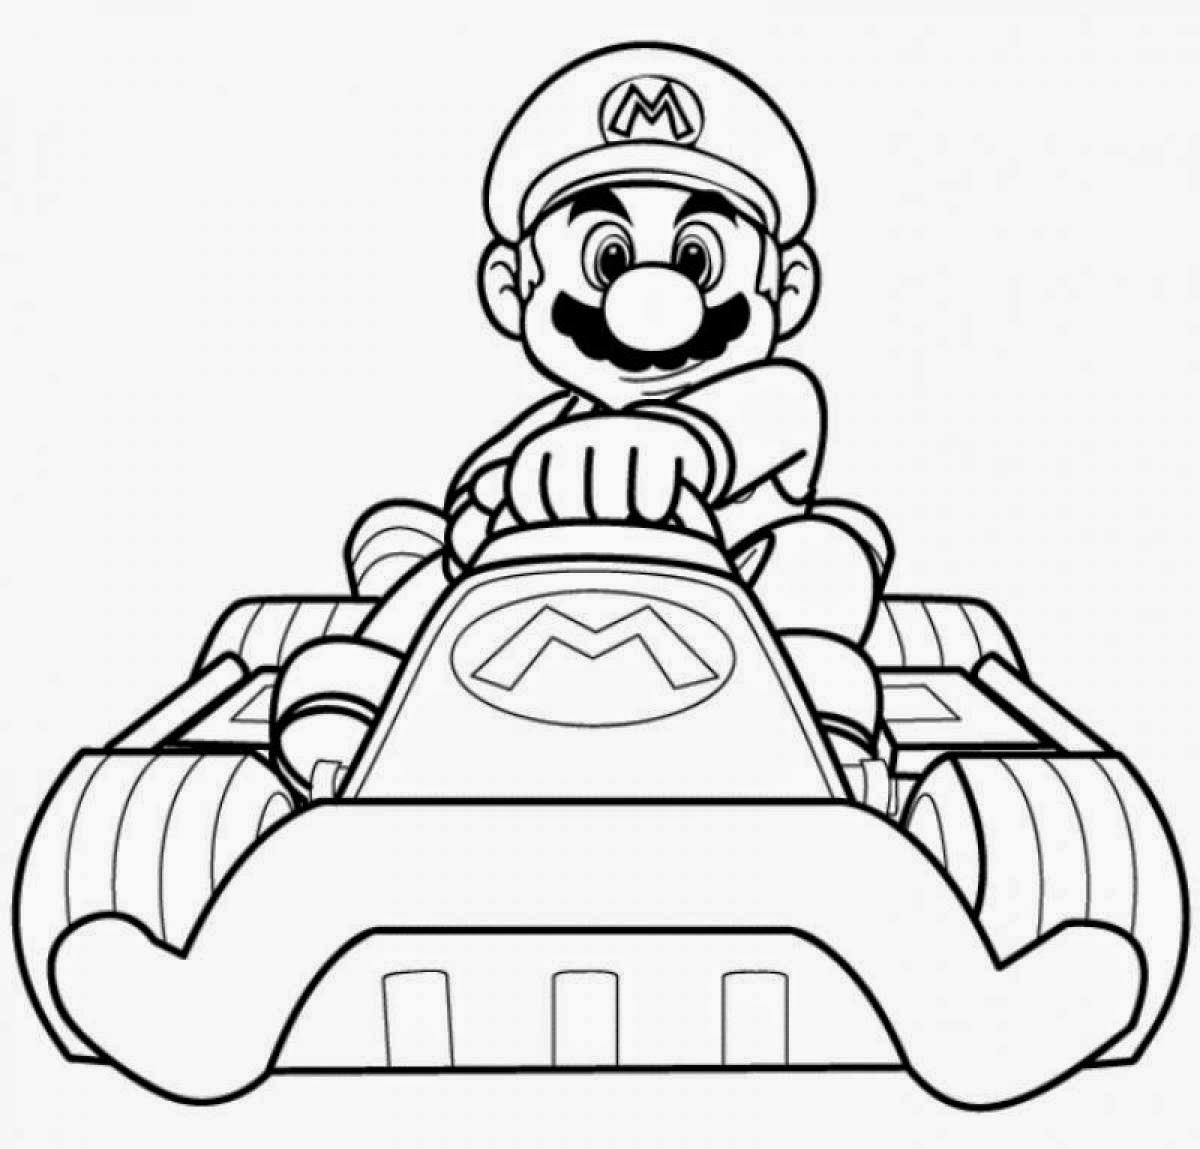 Mario Coloring Pages Printable Printable Of Super Mario Bros Coloring Pages to Print